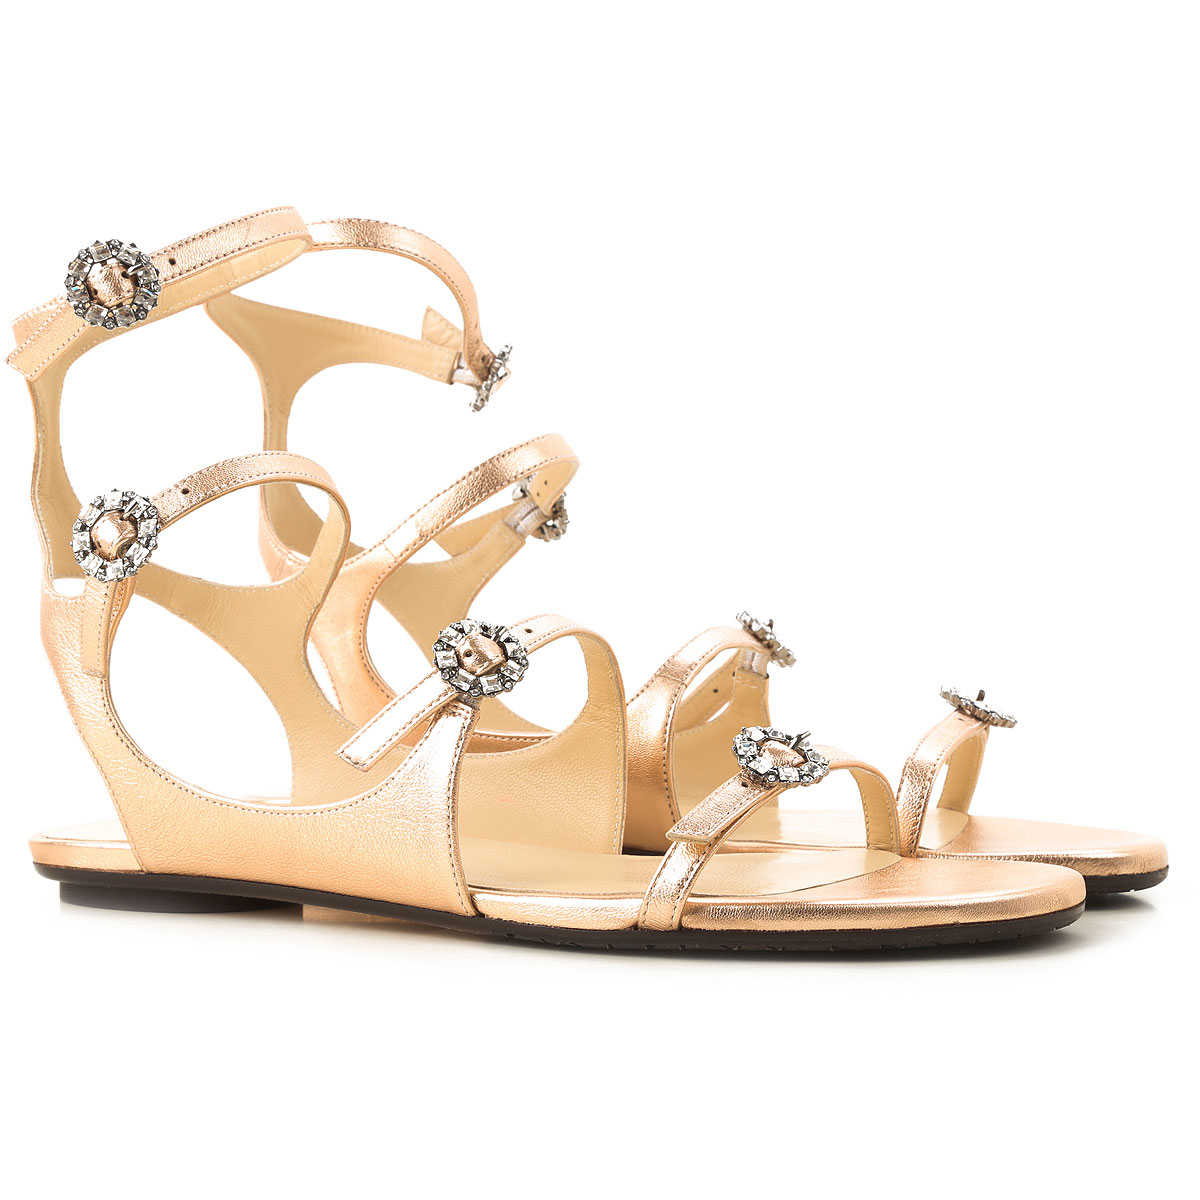 Jimmy Choo Sandals for Women On Sale in Outlet